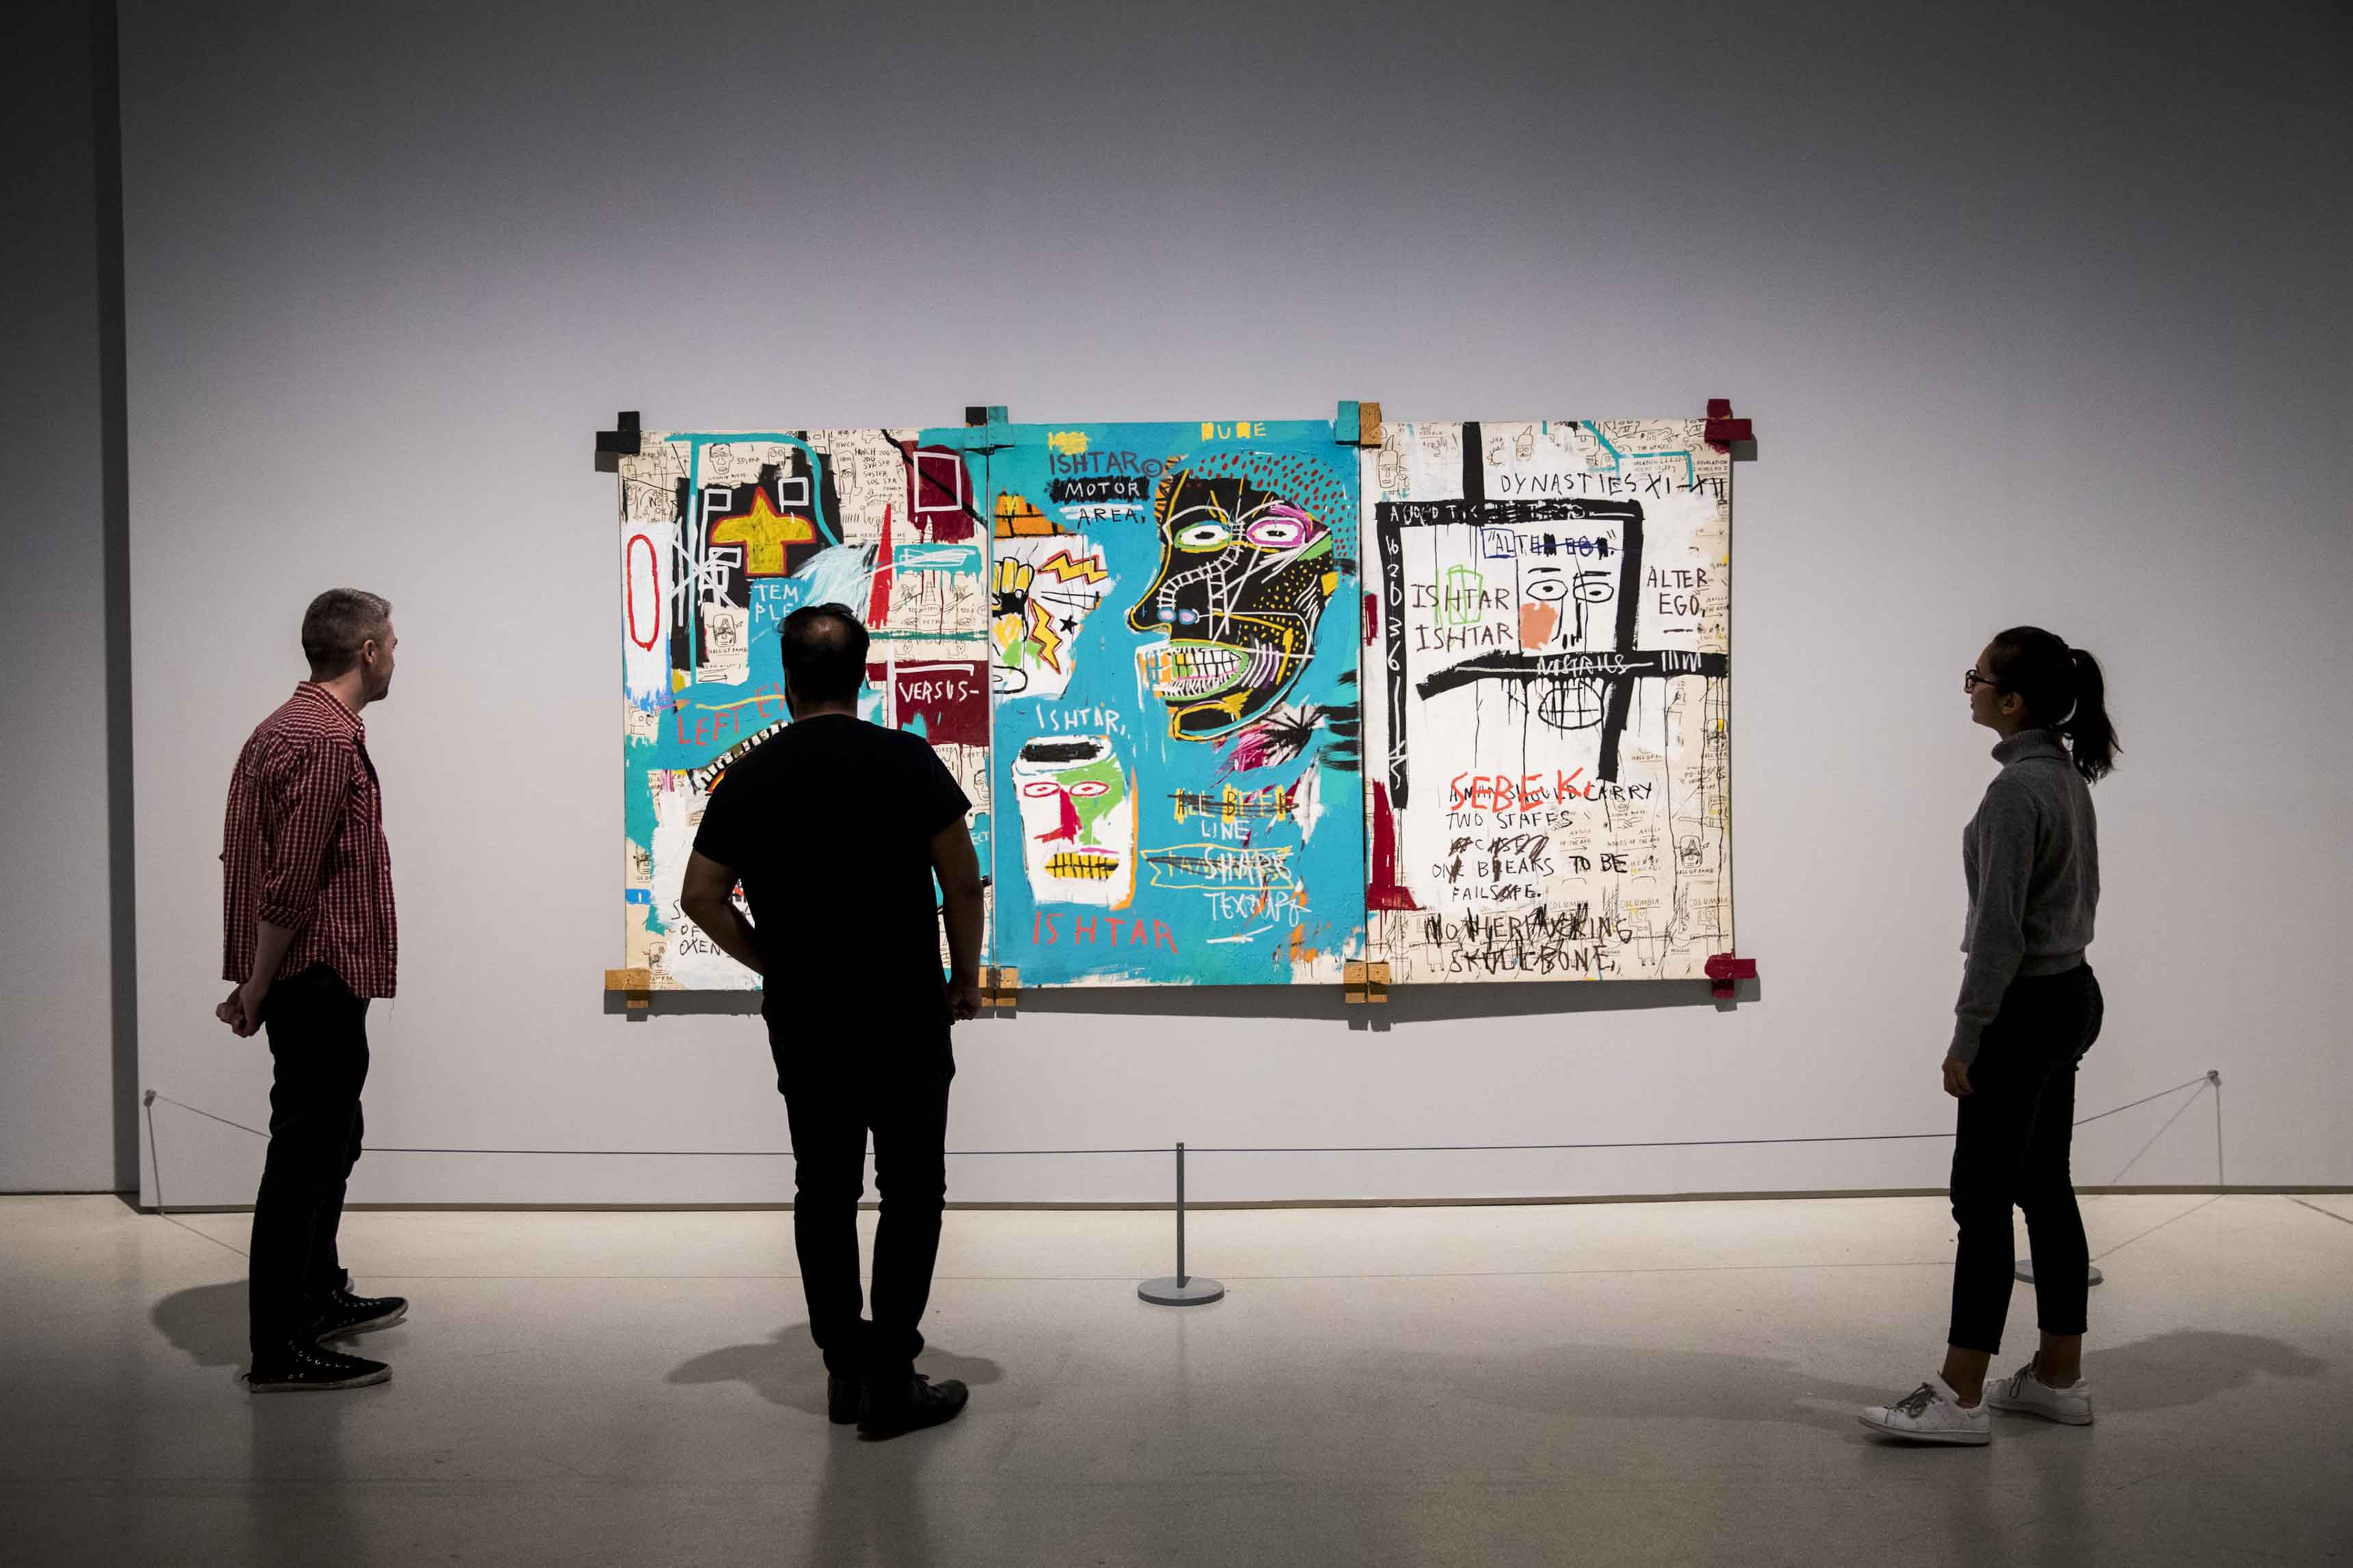 Basquiat: Boom For Real Installation view Barbican Art Gallery 21 September 2017 – 28 January 2018 © Tristan Fewings / Getty Images Artwork: Jean-Michel Basquiat Ishtar, 1983 Collection Ludwig, Ludwig Forum für Internationale Kunst, Aachen. © The Estate of Jean-Michel Basquiat. Licensed by Artestar, New York. Photo: Carl Brunn